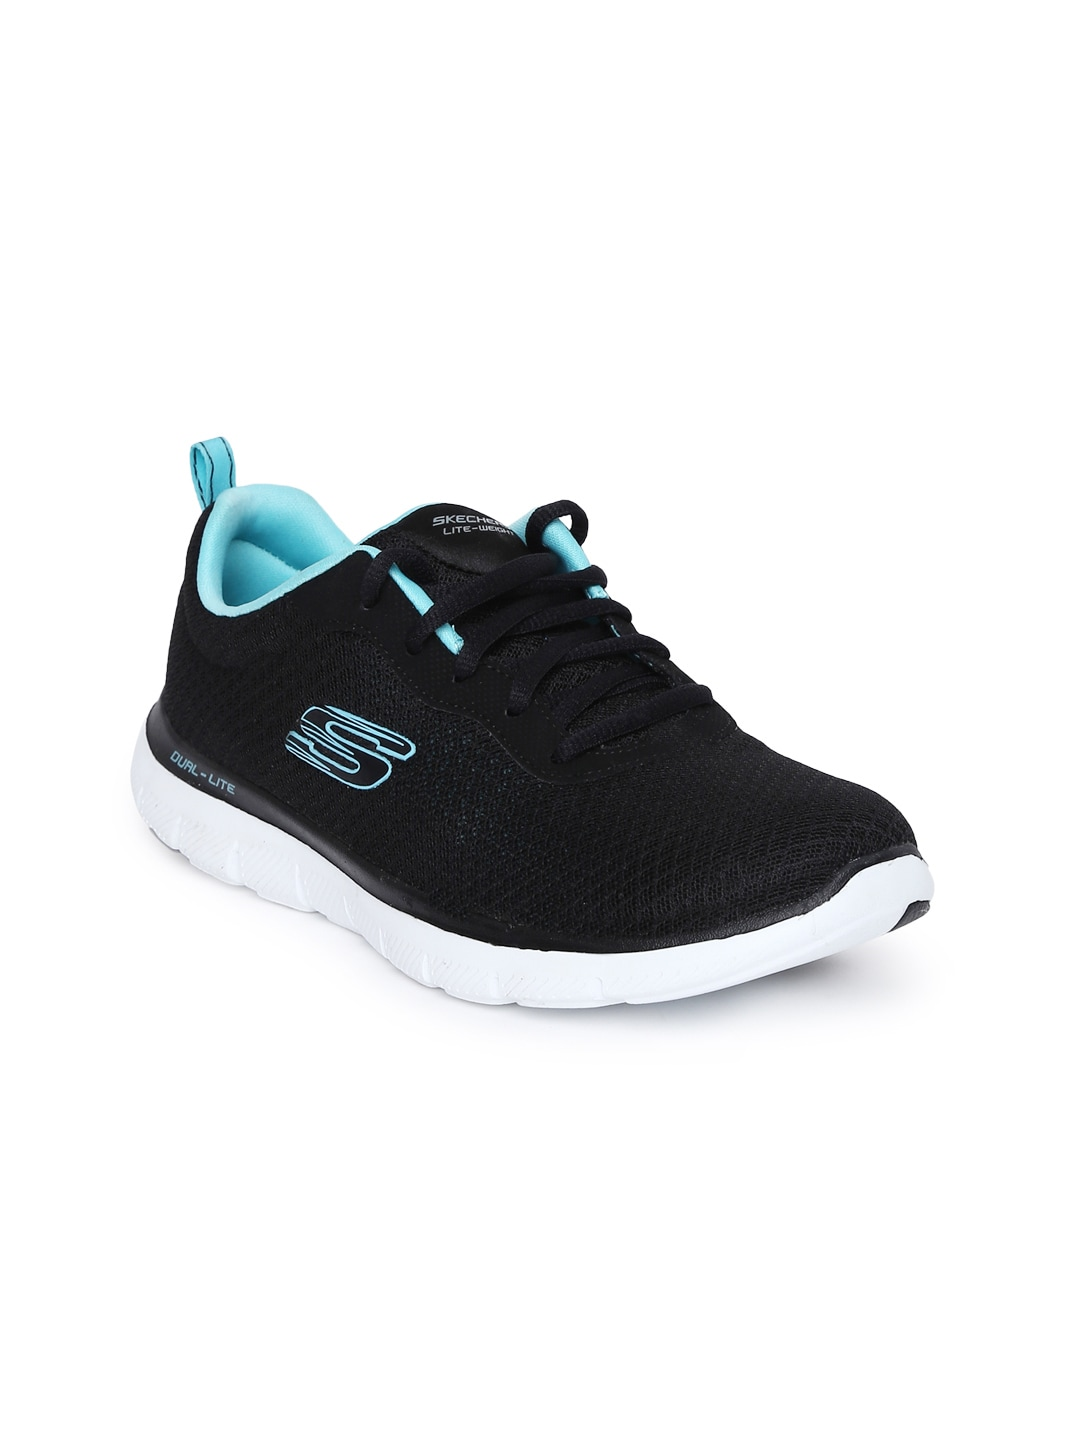 skechers rubber shoes women